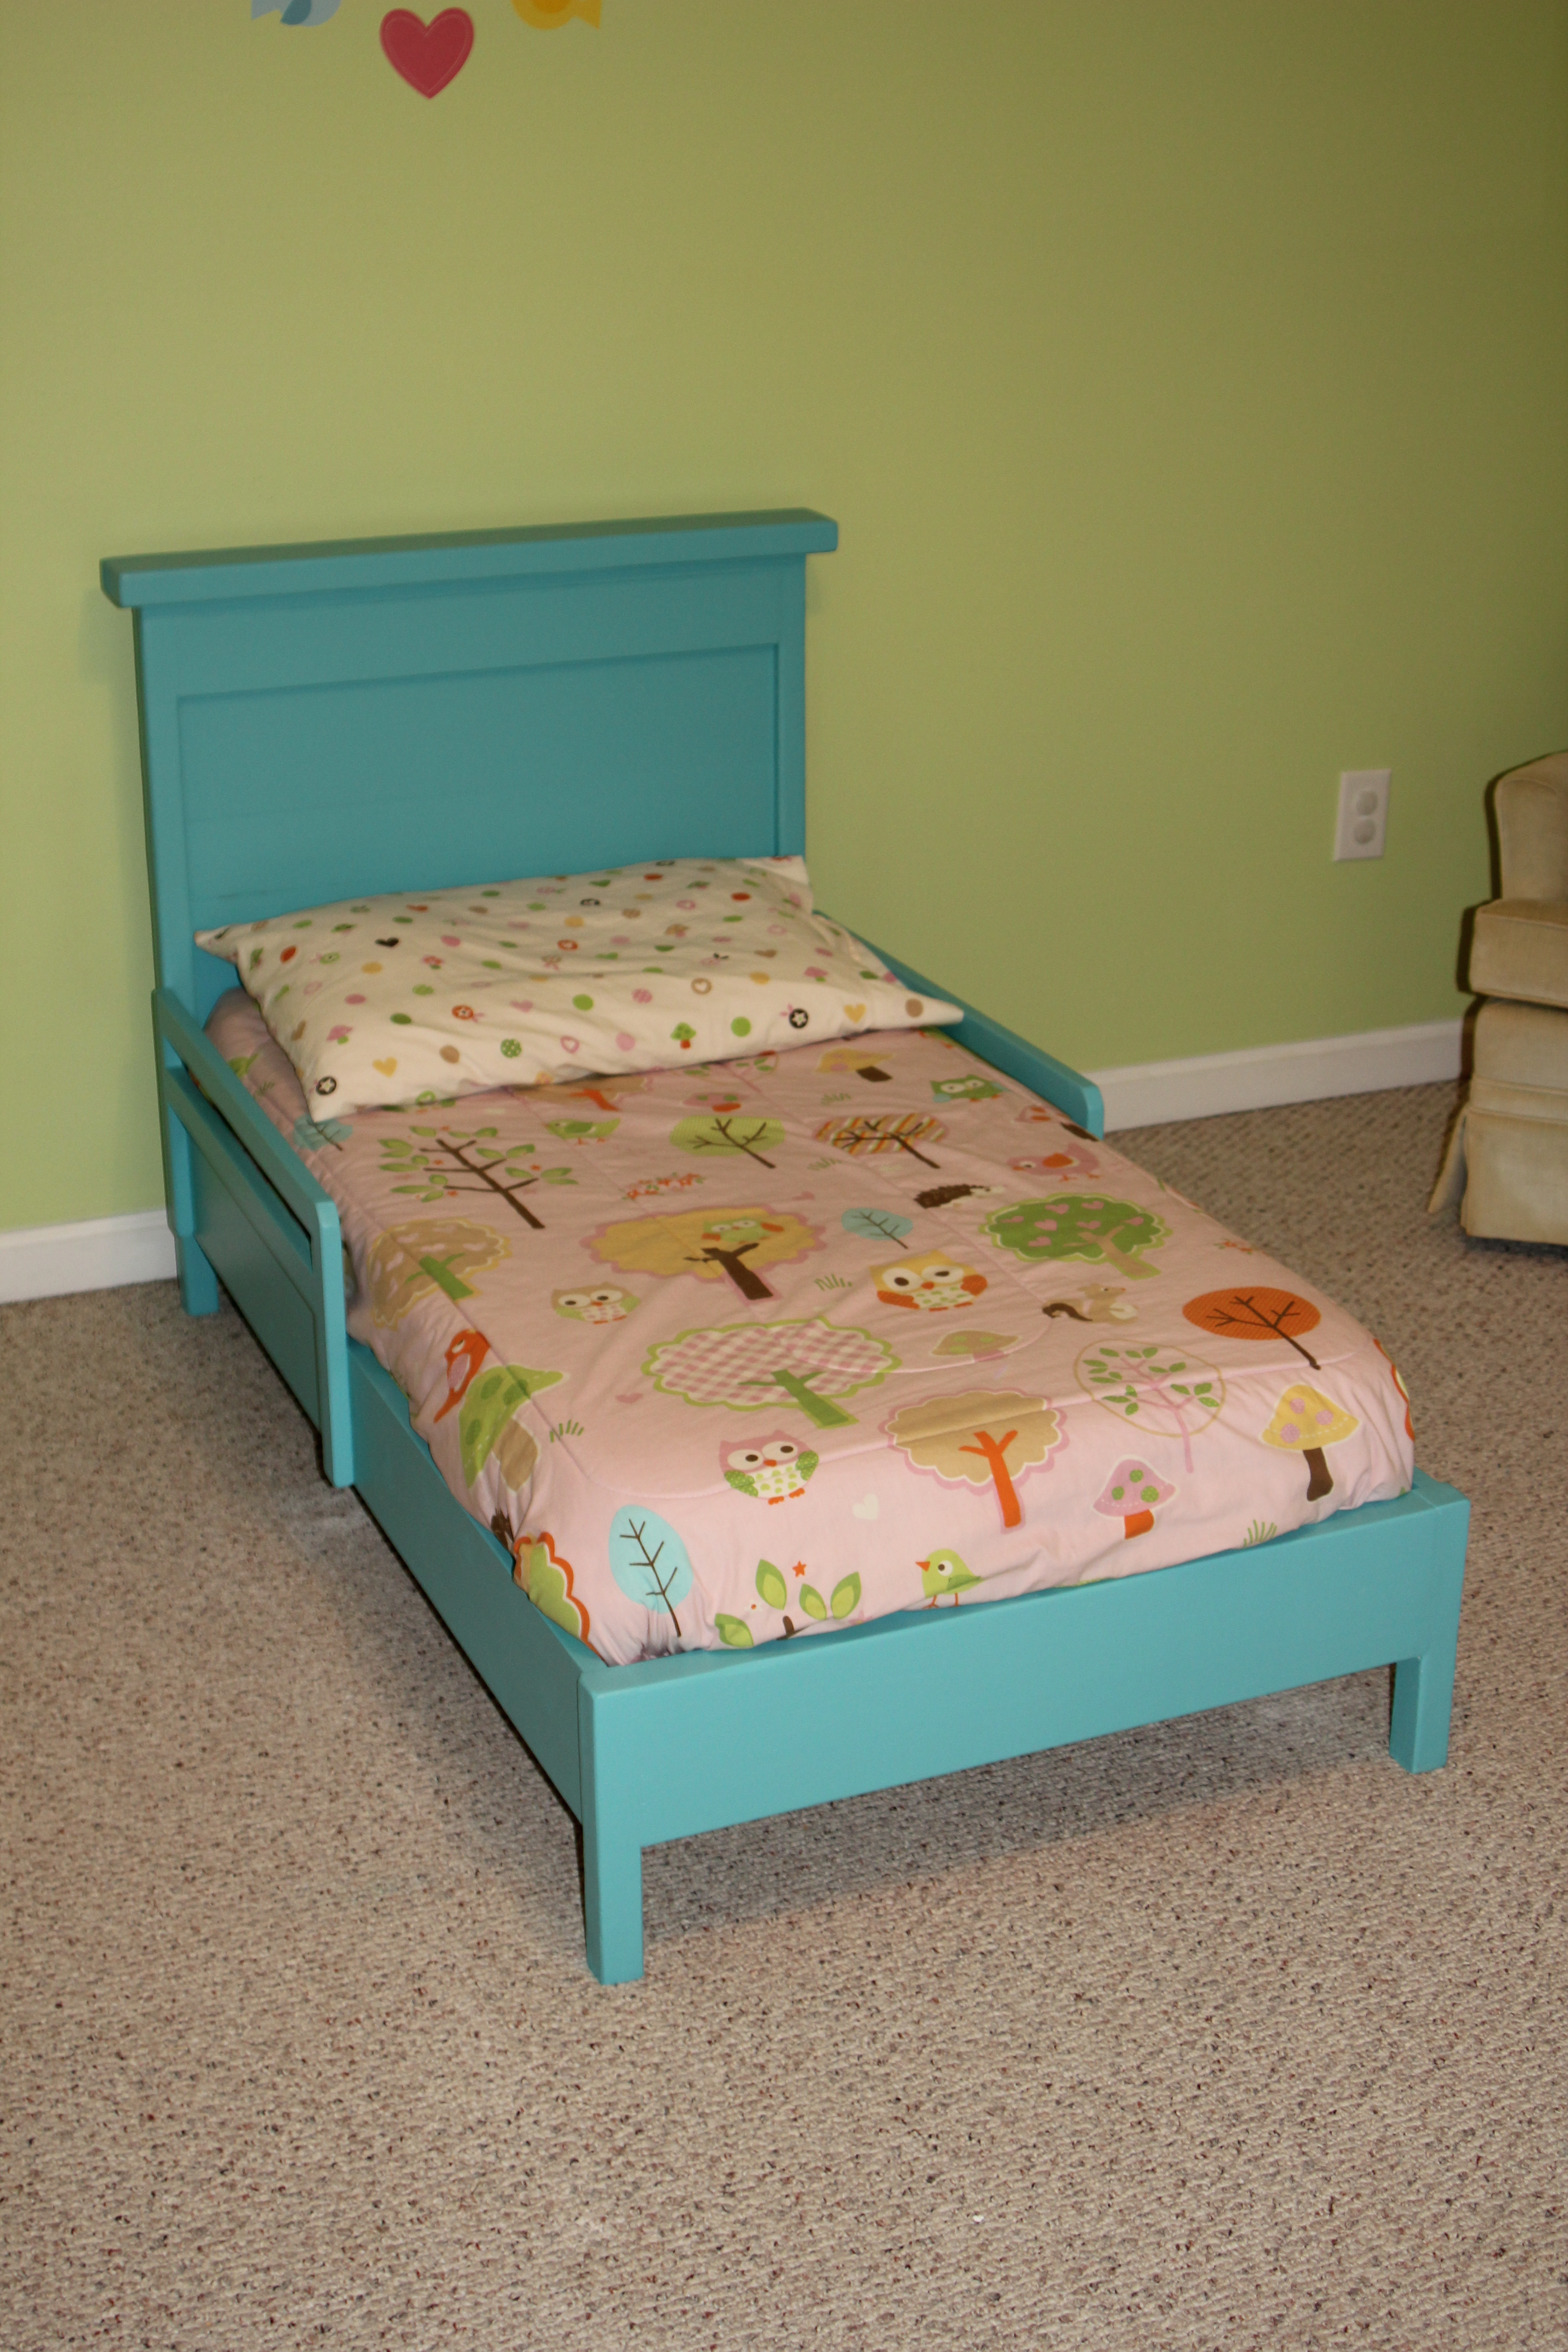 Toddler Bed With Rustic Headboard